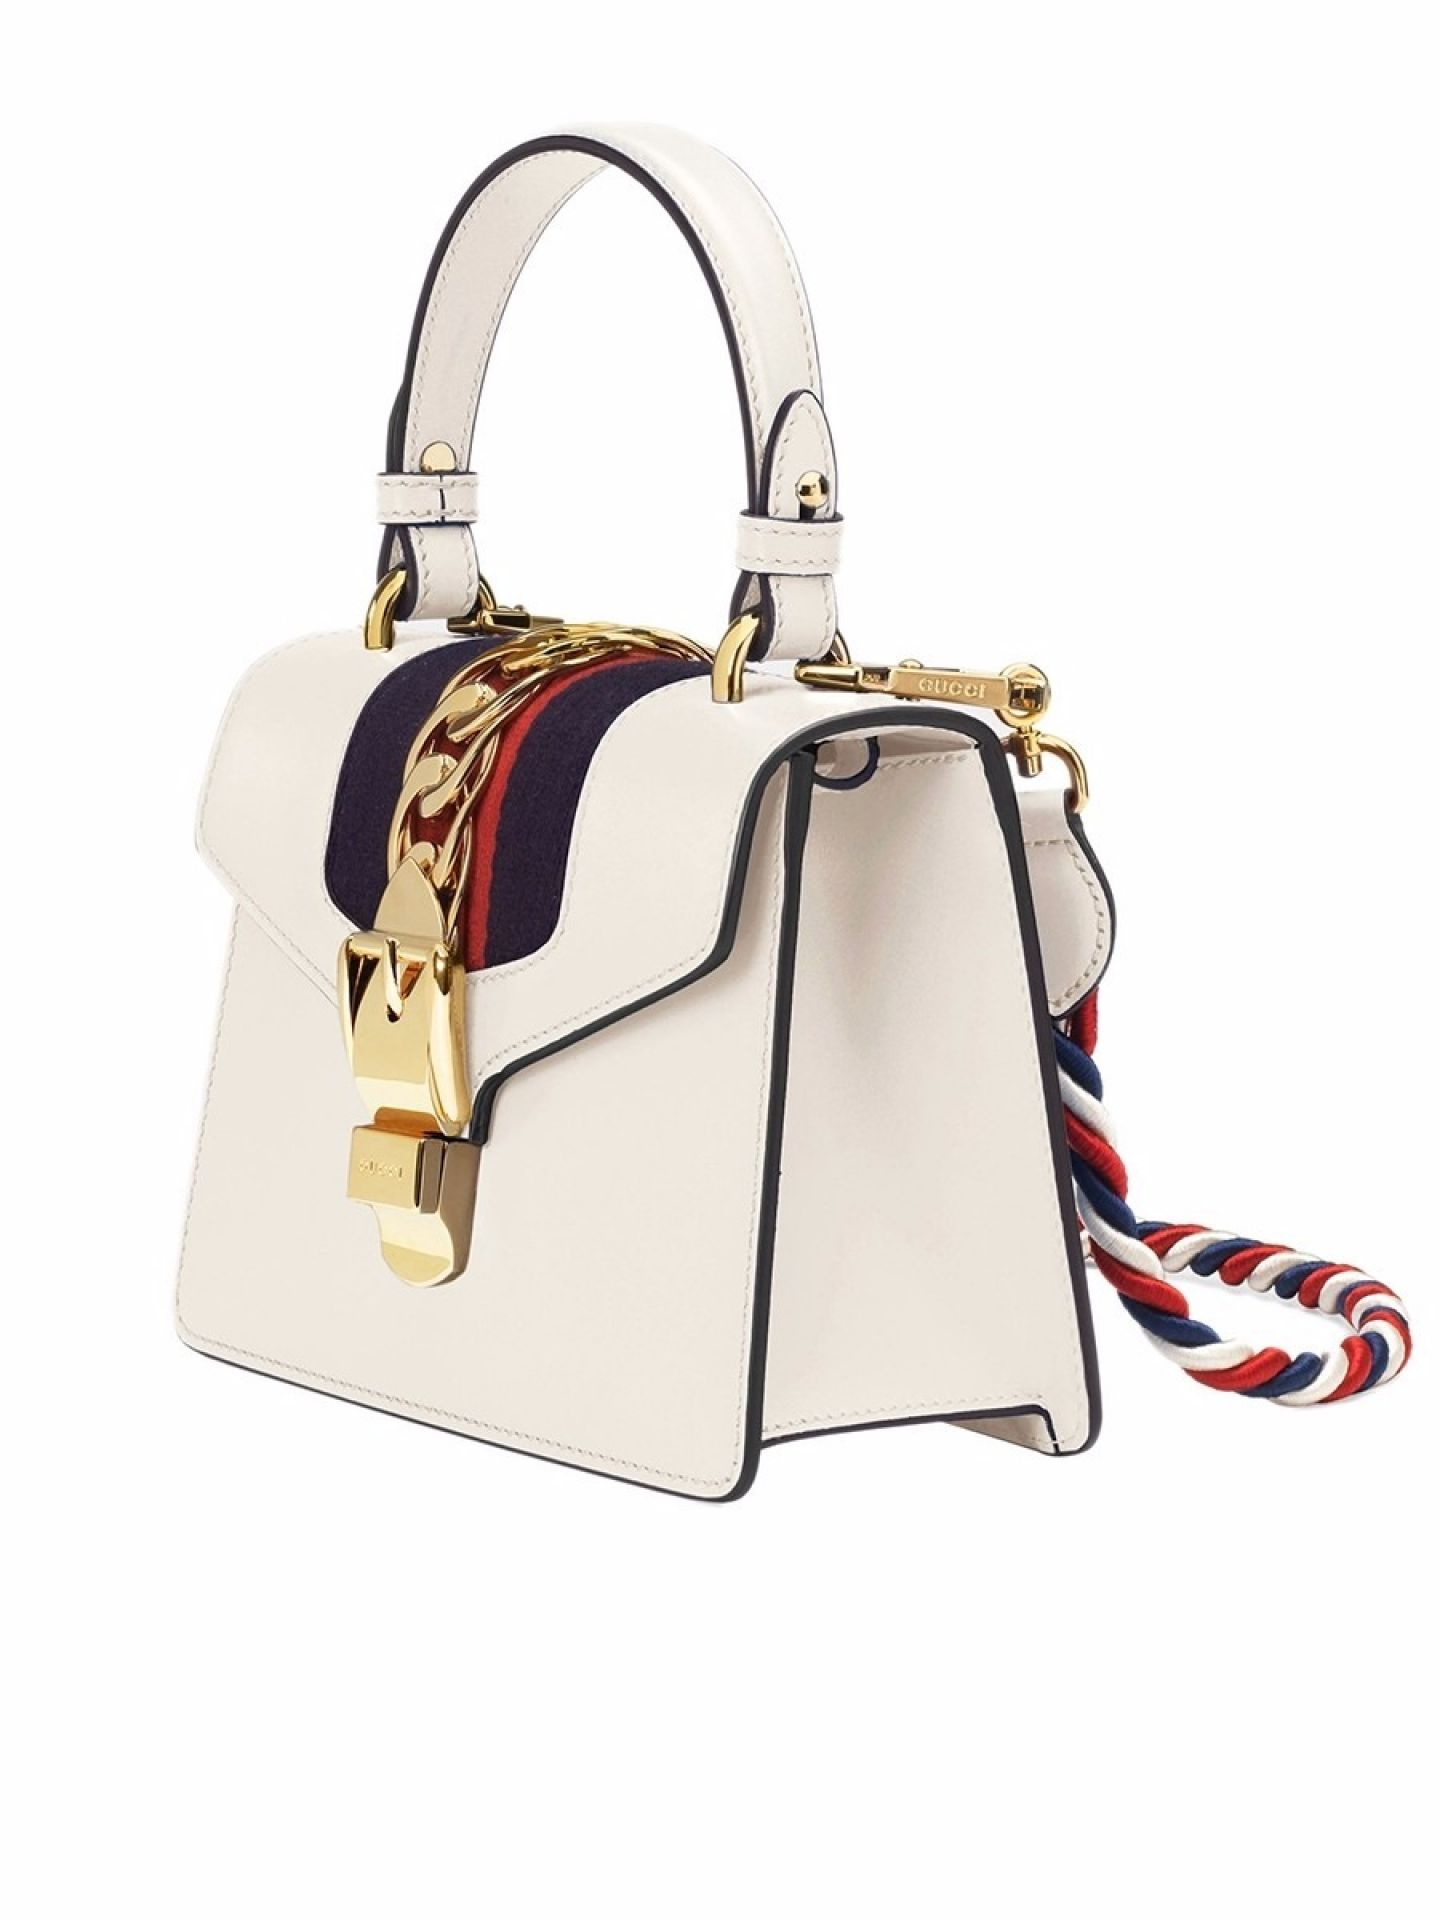 GUCCI MINI SYLVIE IVORY LEATHER CHAIN BAG